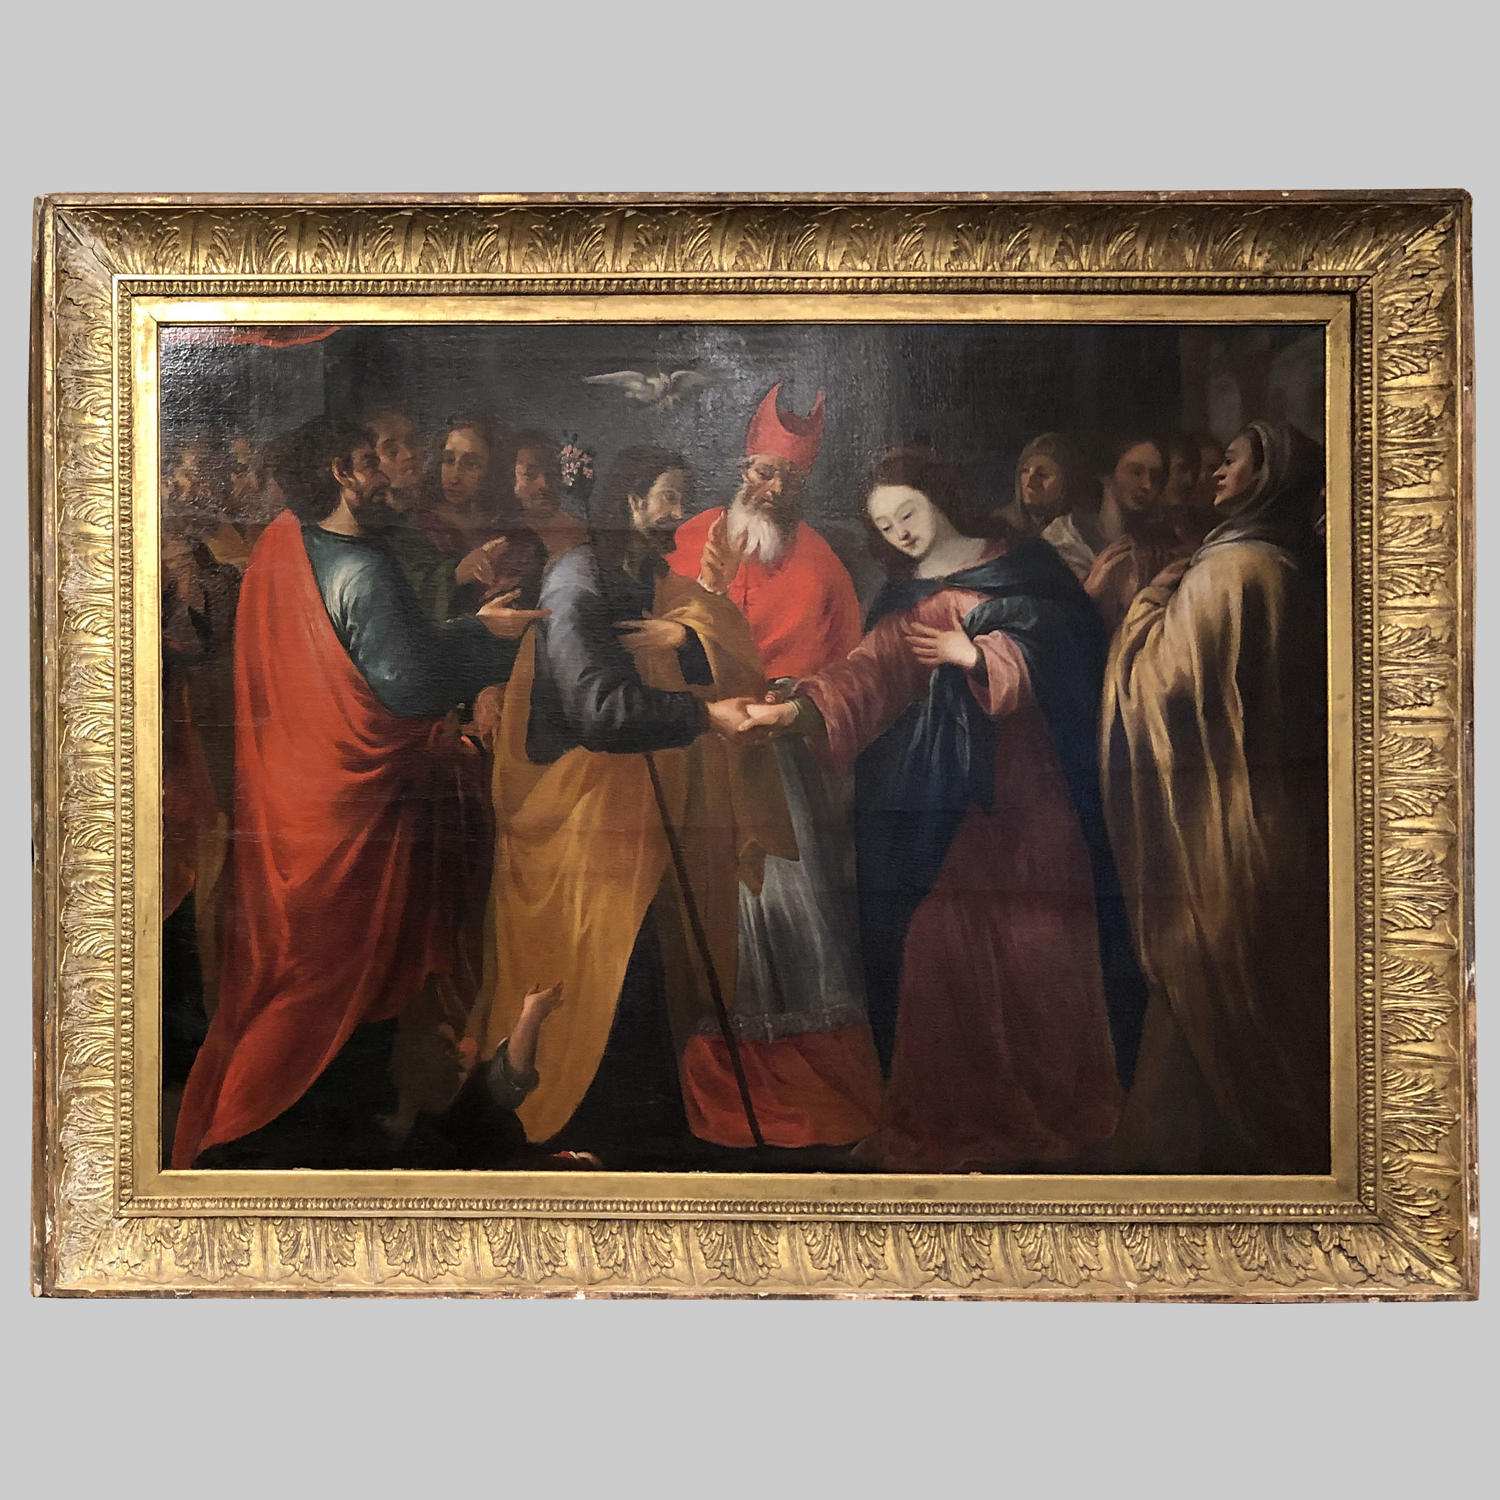 Oil painting on canvas - The Marriage of the Virgin